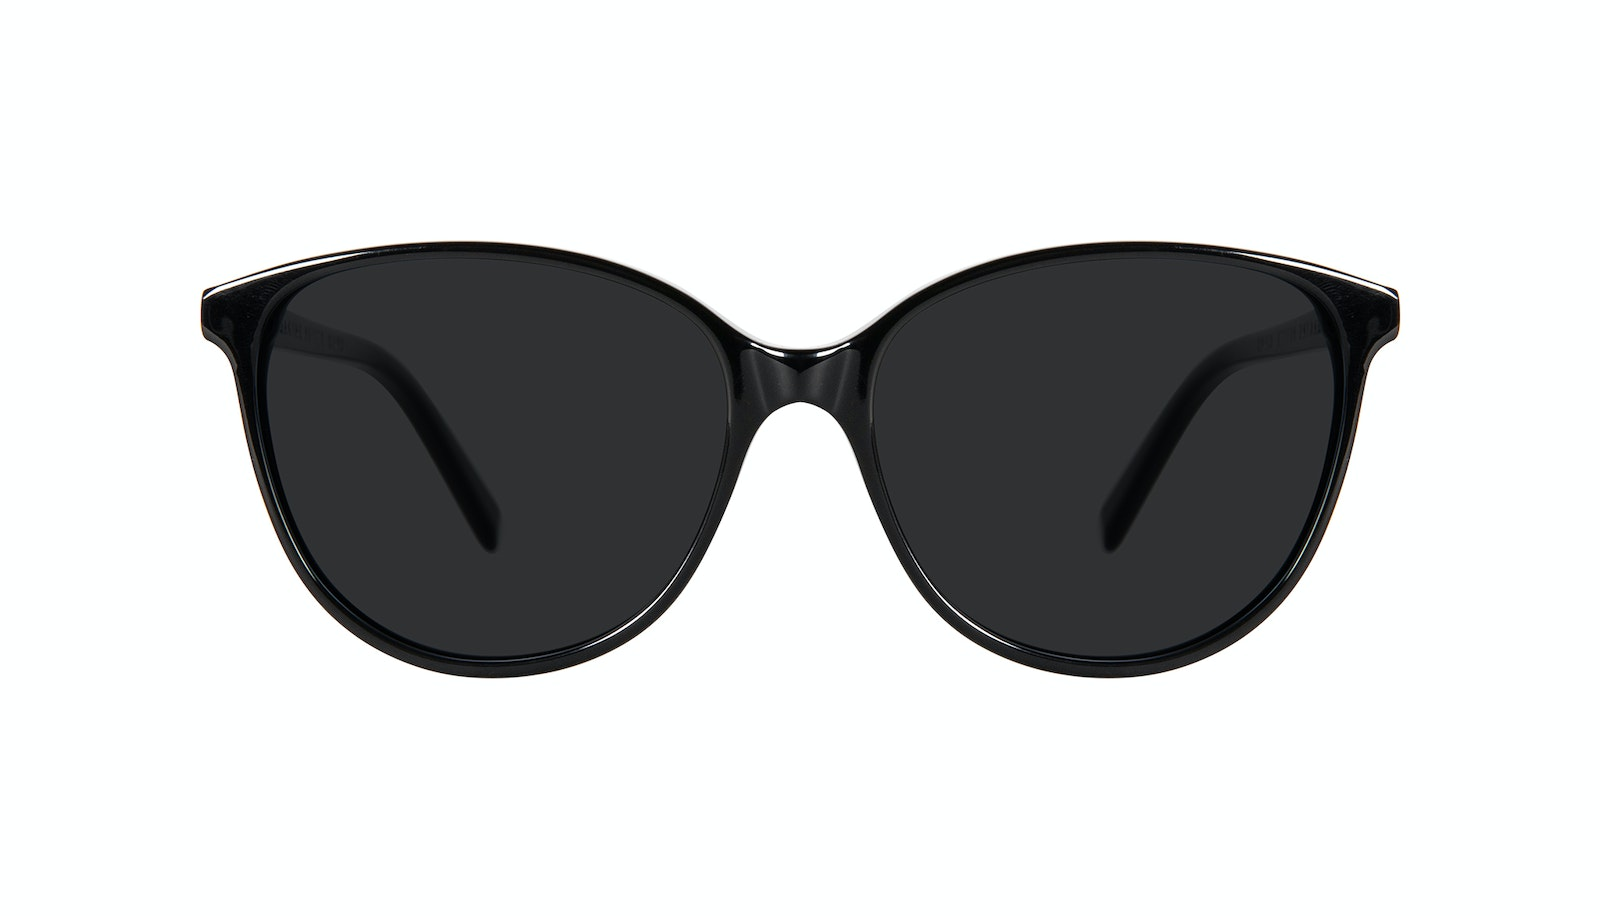 Affordable Fashion Glasses Round Sunglasses Women Imagine Petite Onyx